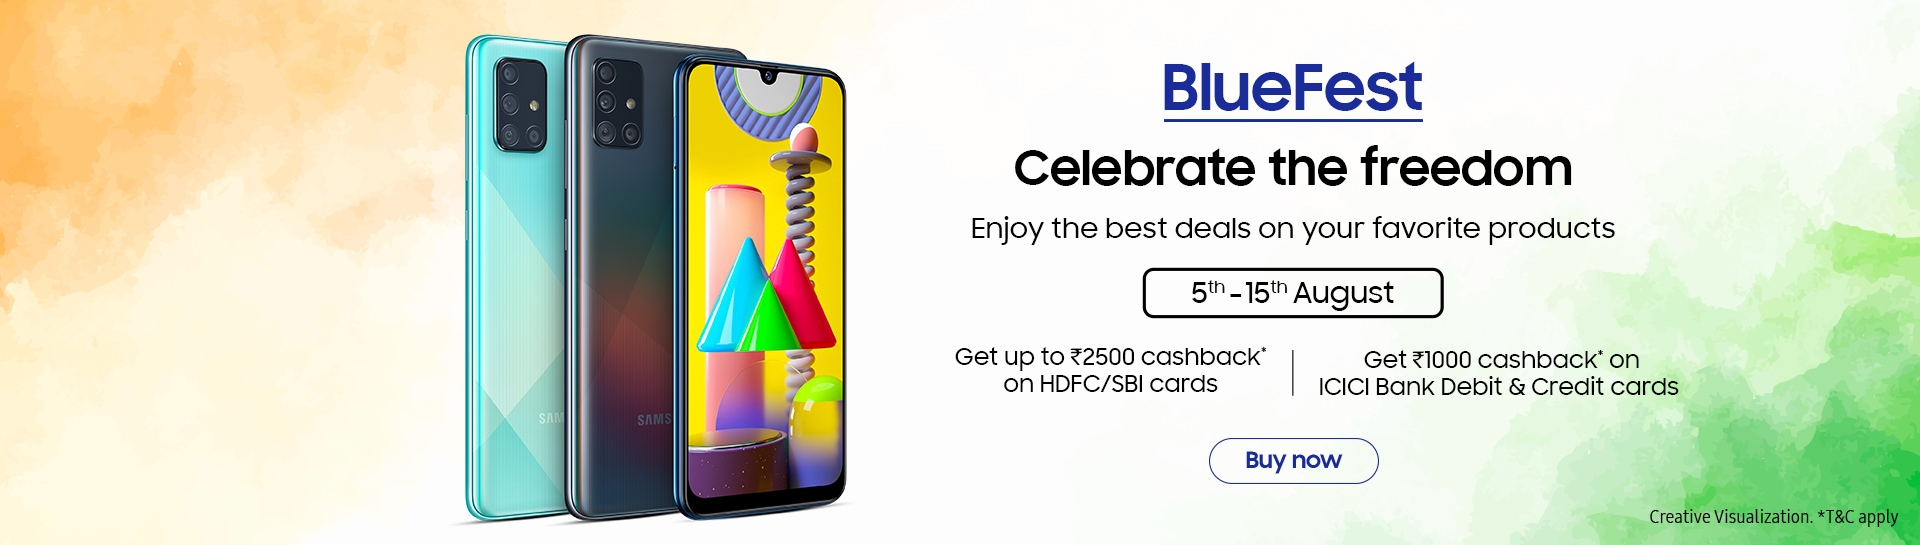 Samsung BlueFest offers on Smartphone